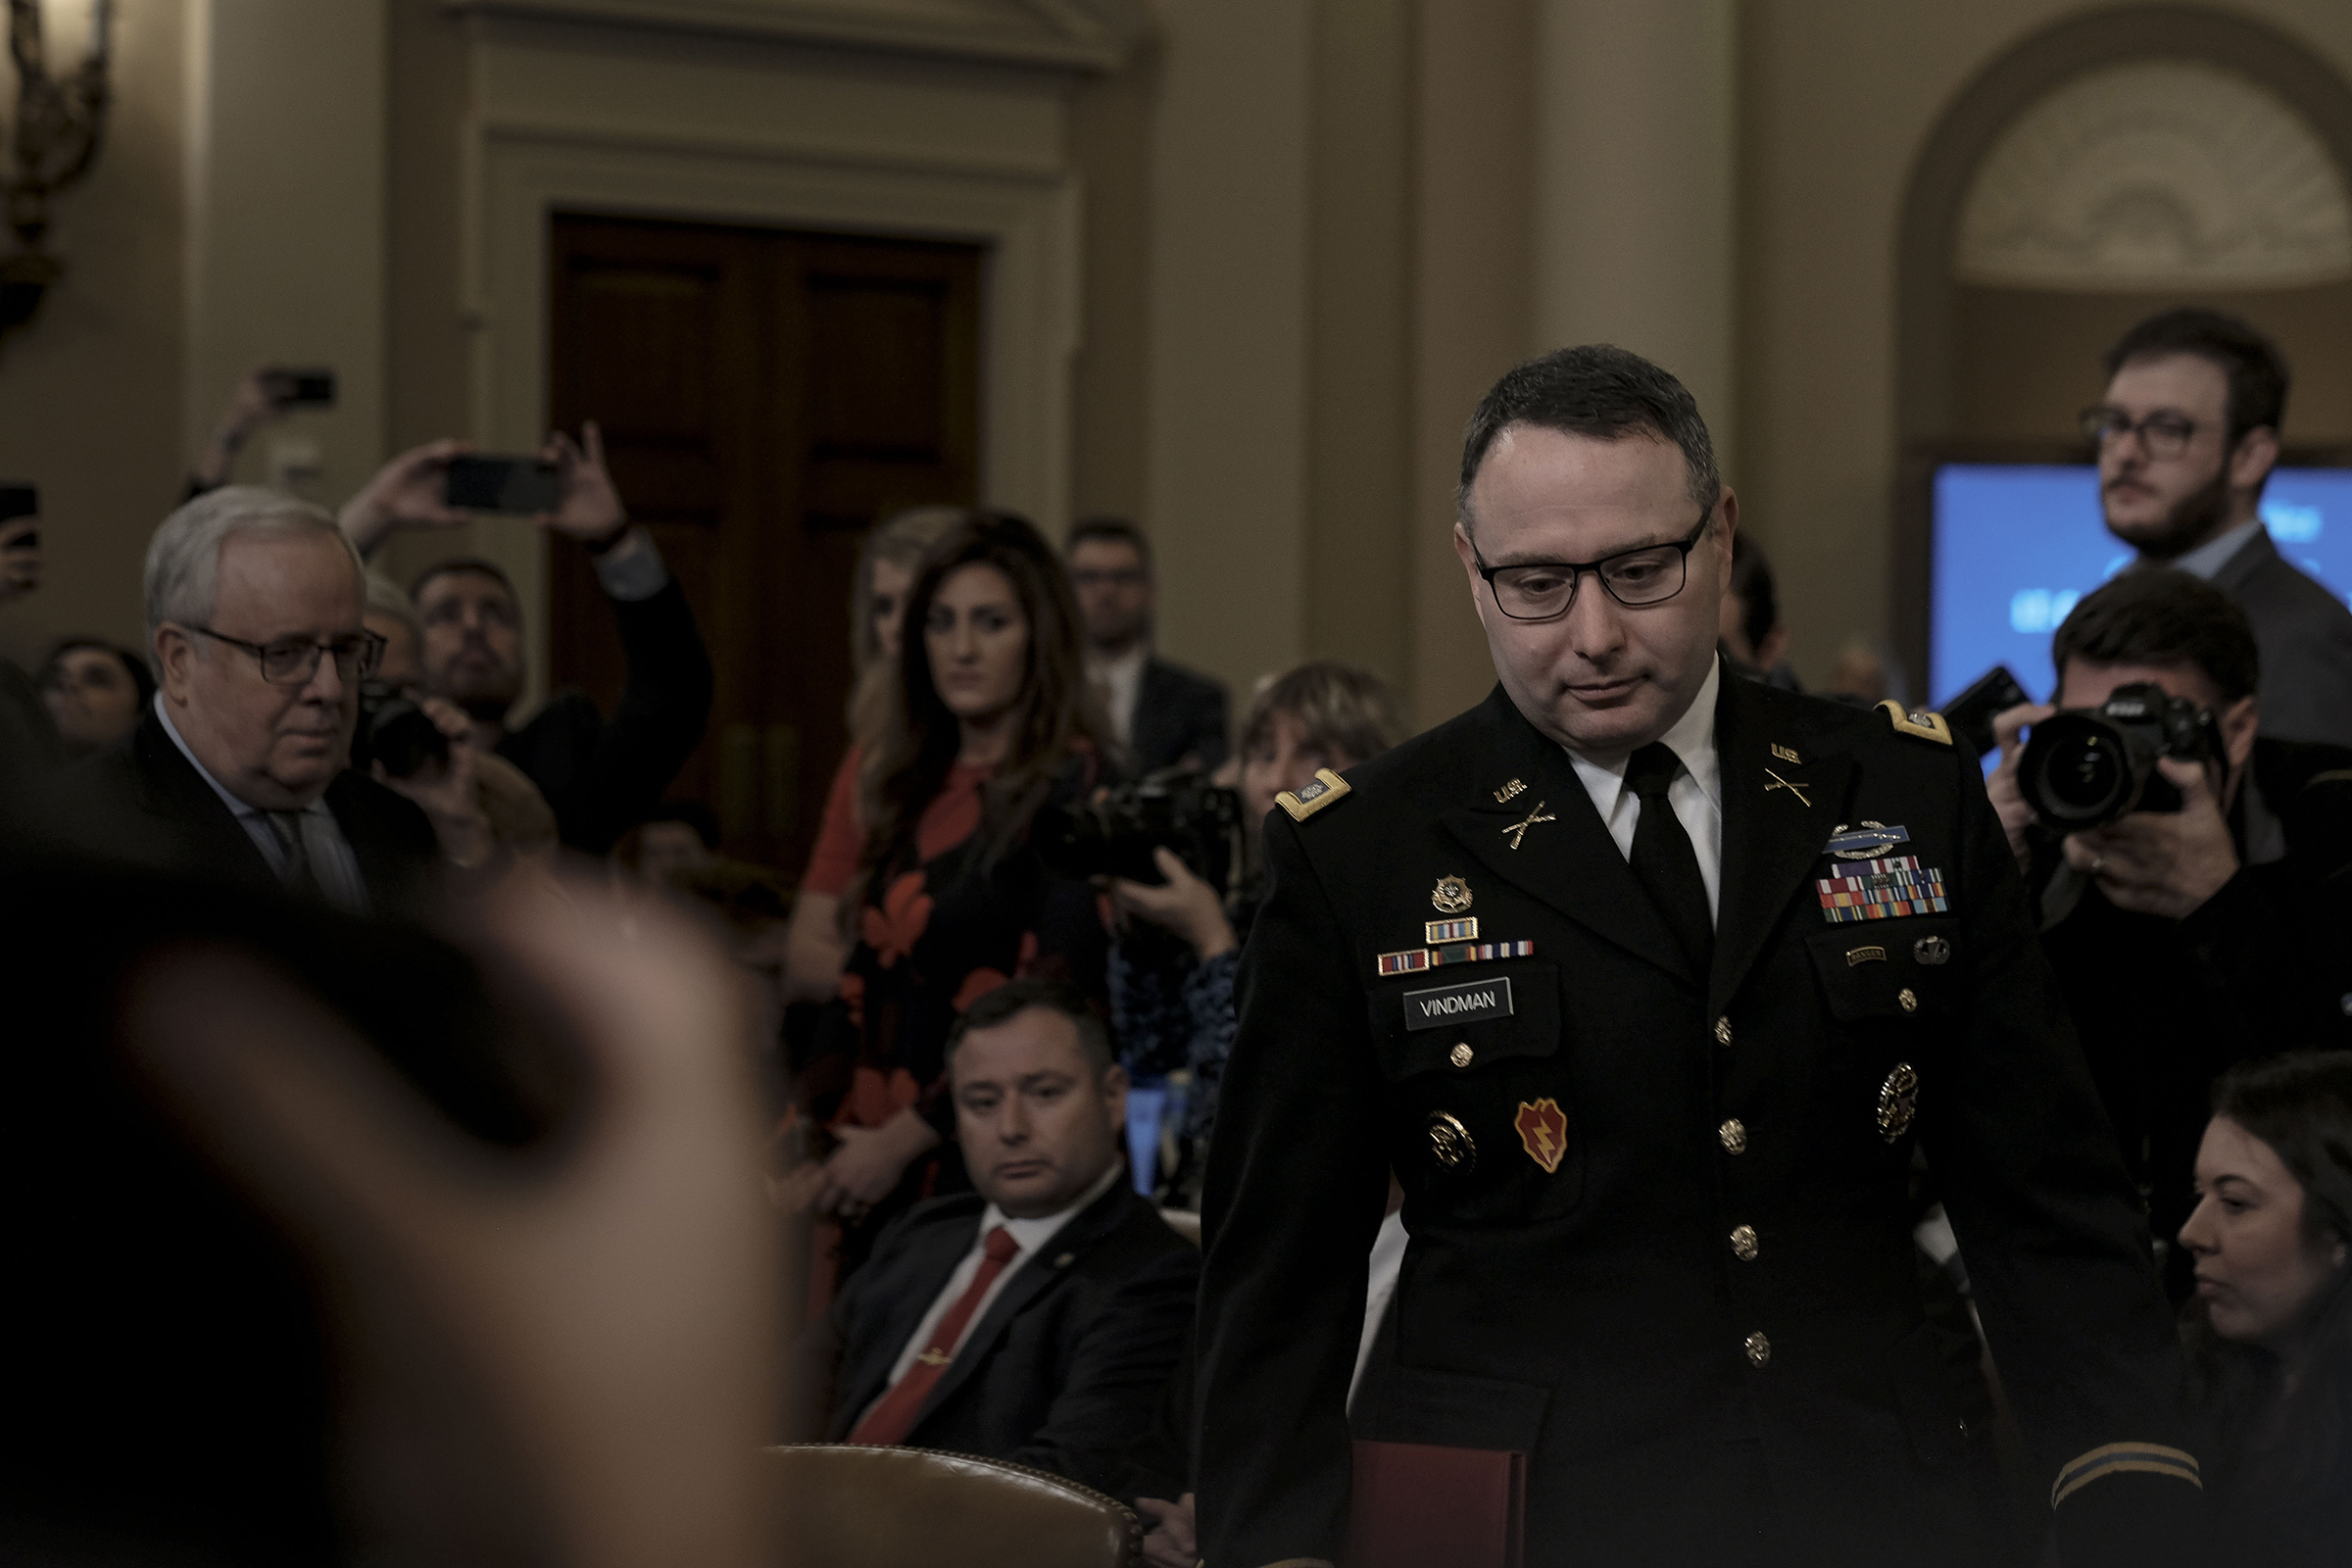 Witness Lt. Col. Alexander Vindeman, National Security Council staffer, enters the House Intelligence Committee hearing on the impeachment inquiry on Capitol Hill in Washington, D.C. on Nov. 19, 2019. Gabriella Demczuk / TIME